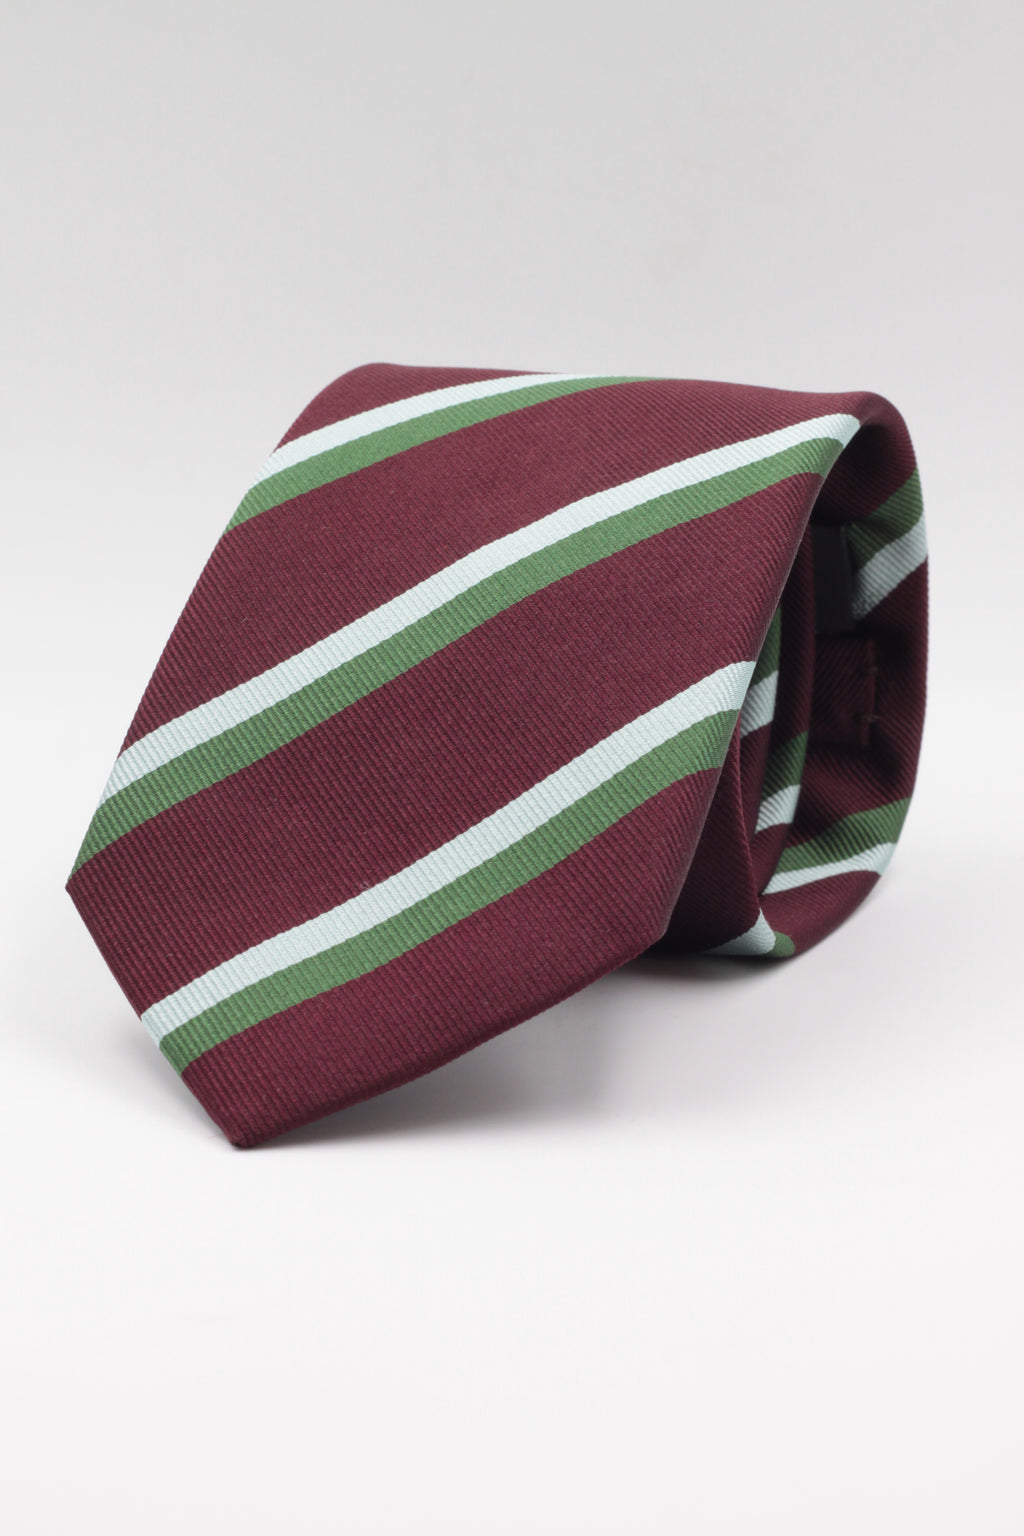 Burgundy, Olive green and Light Blue stripe tie